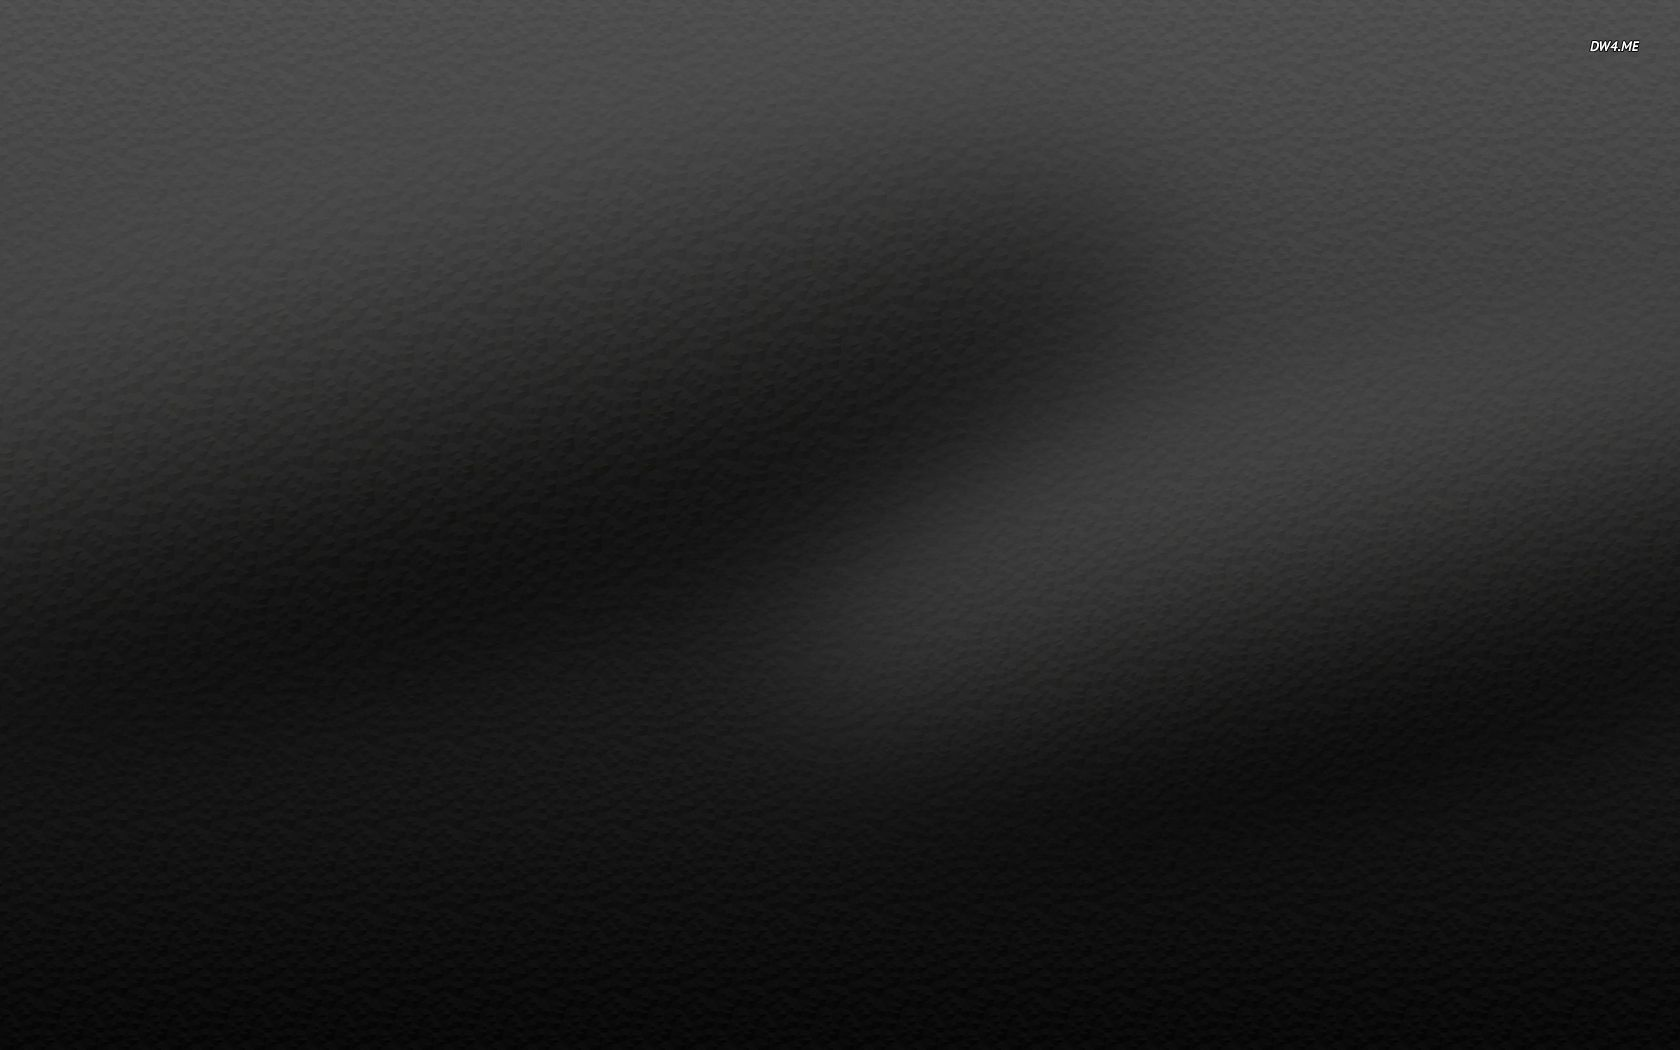 Black leather wallpaper   Minimalistic wallpapers   167 1680x1050